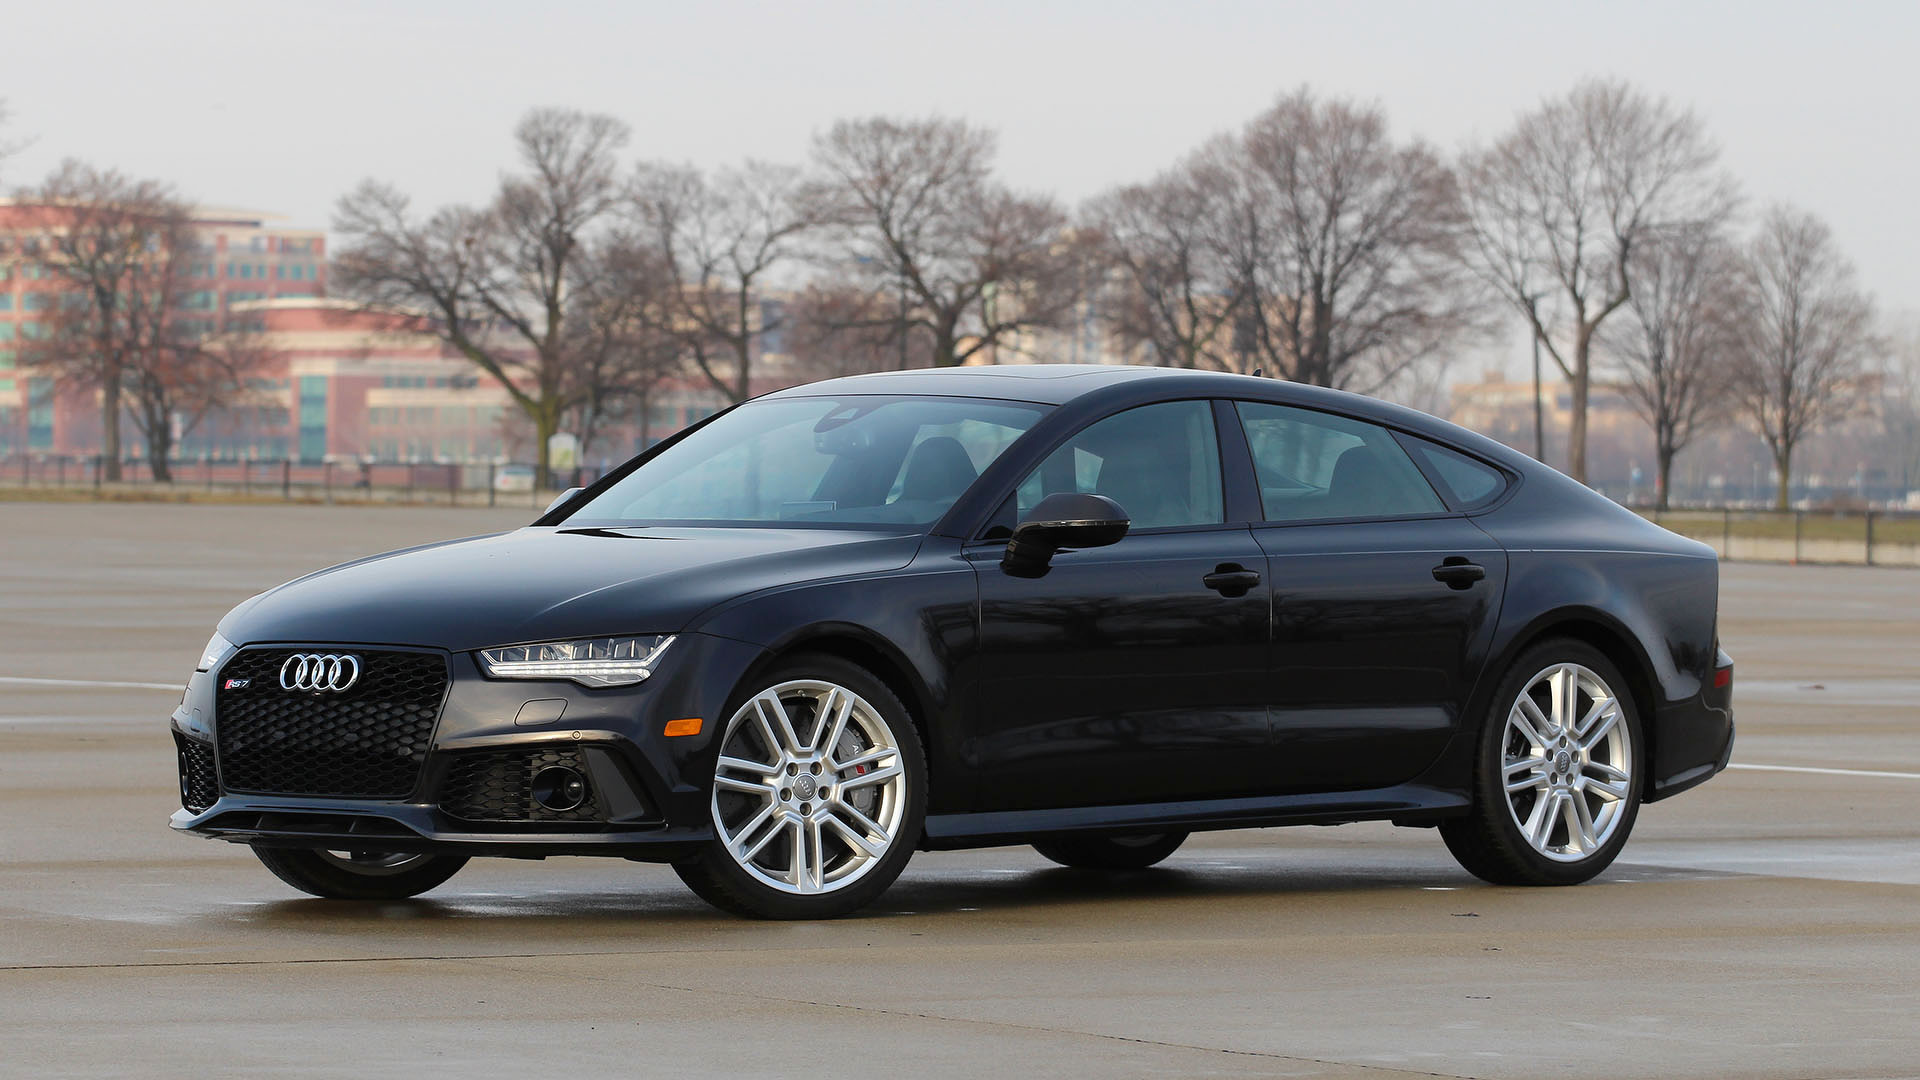 Audi Rs7 2017 Review Collection 9 Wallpapers